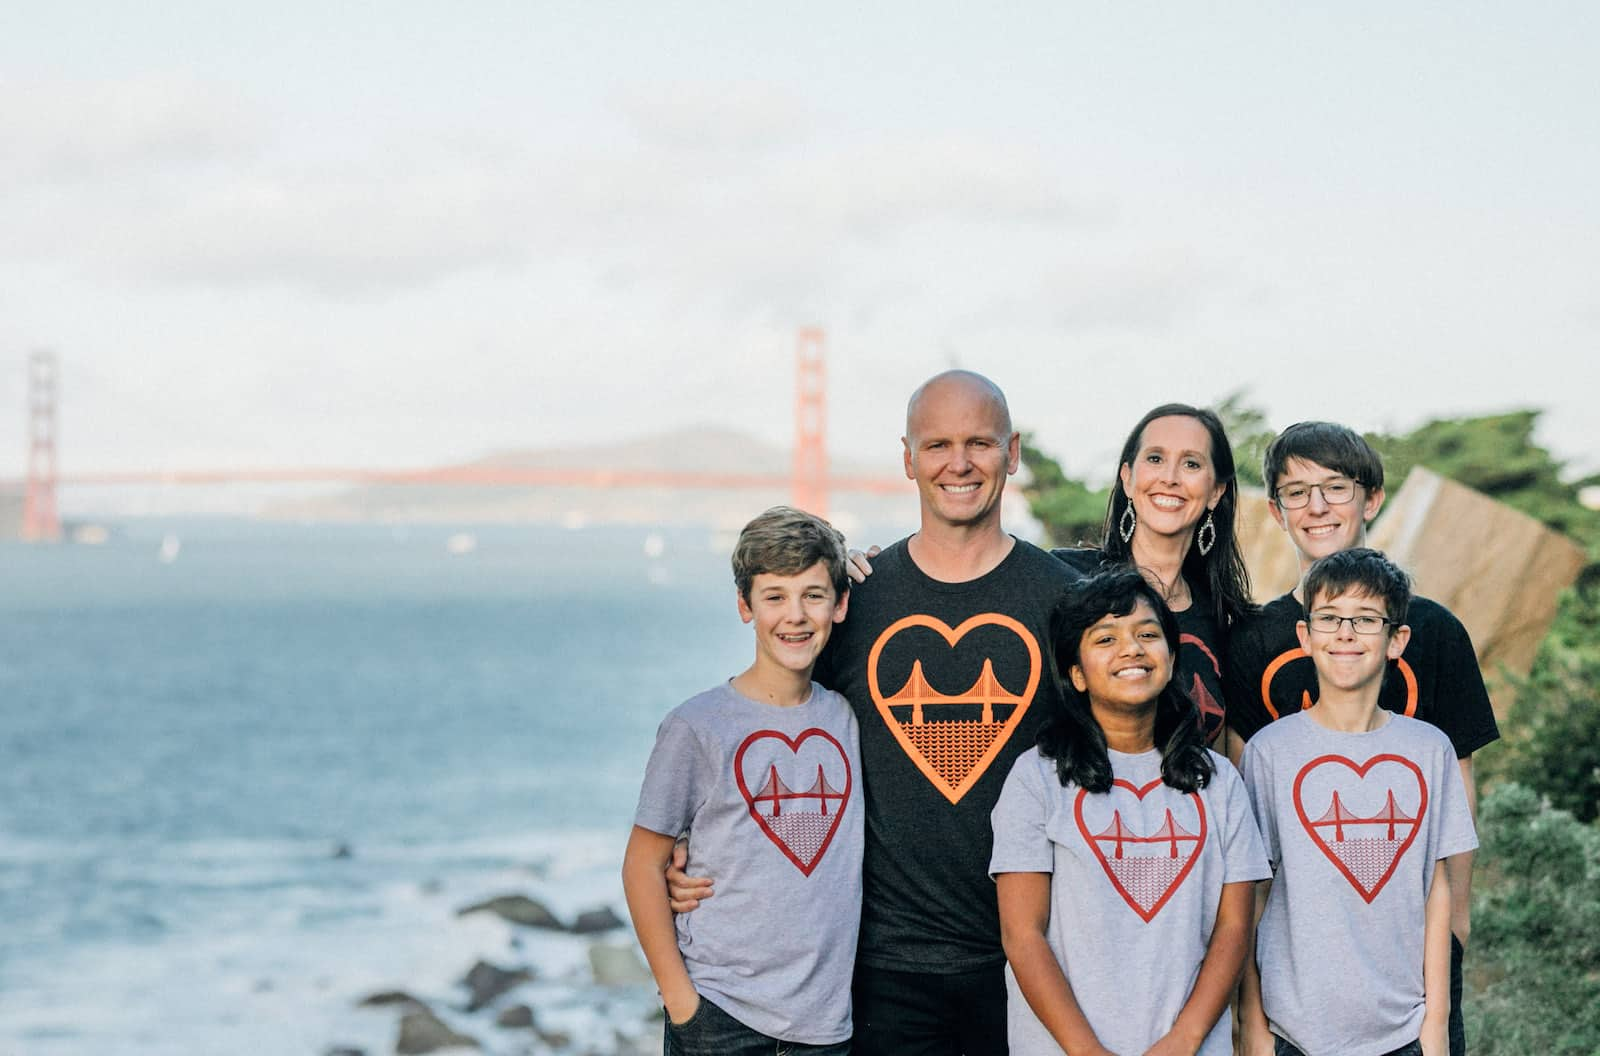 A man and woman and four children stand in front of the Golden Gate Bridge, wearing T-shirts with a graphic of the Golden Gate Bridge on it.